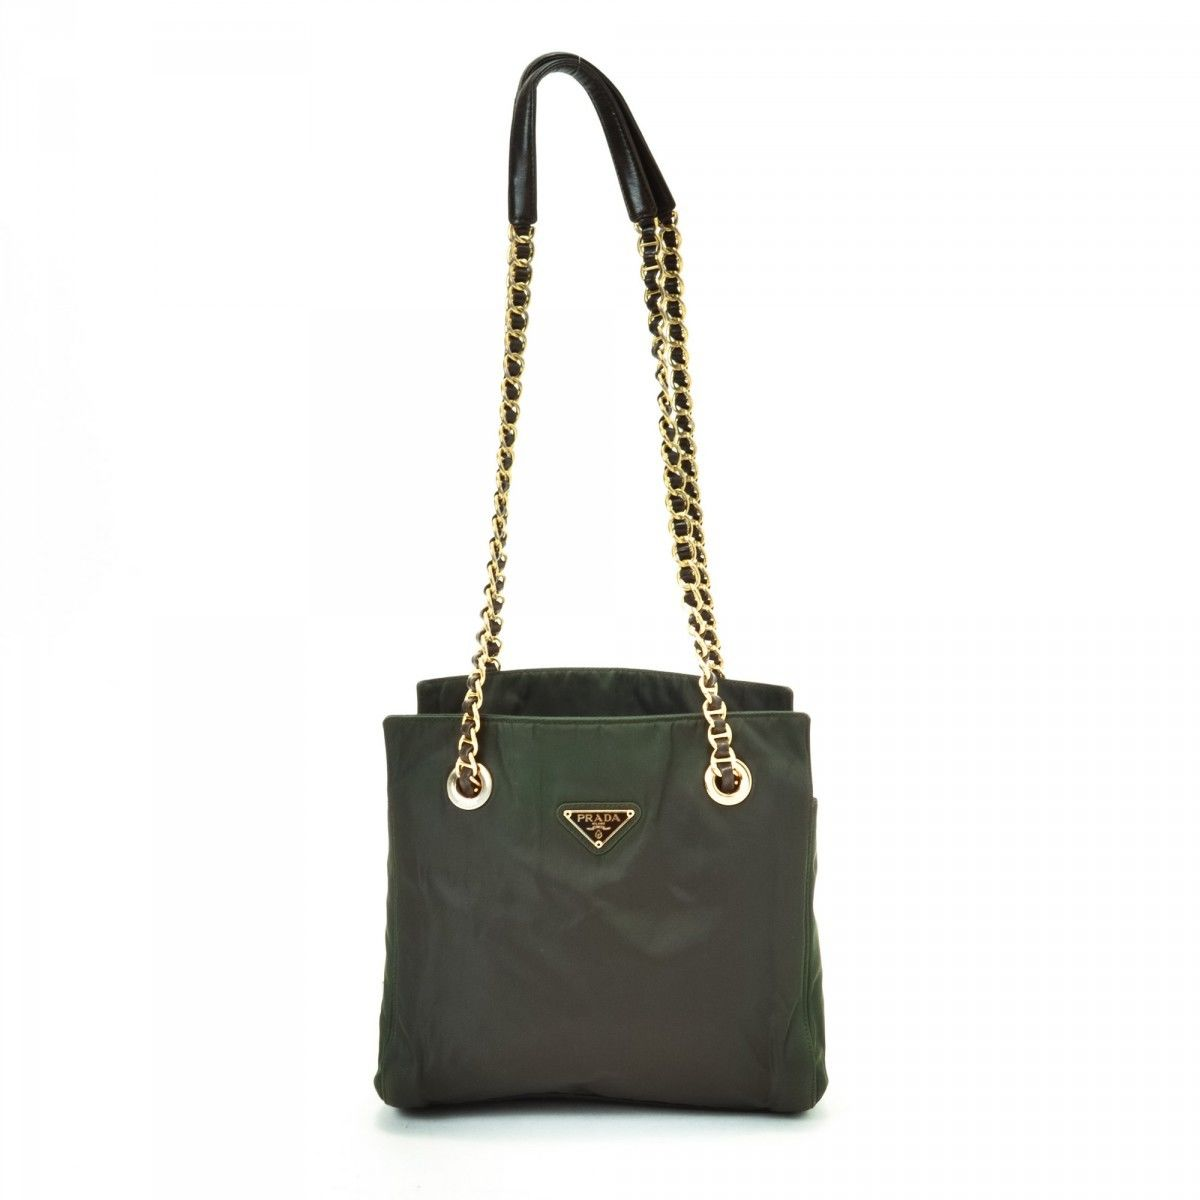 e46d172afc7b ... low price prada tessuto chain shoulder bag nylon lxrandco pre owned  luxury vintage 170f1 319a4